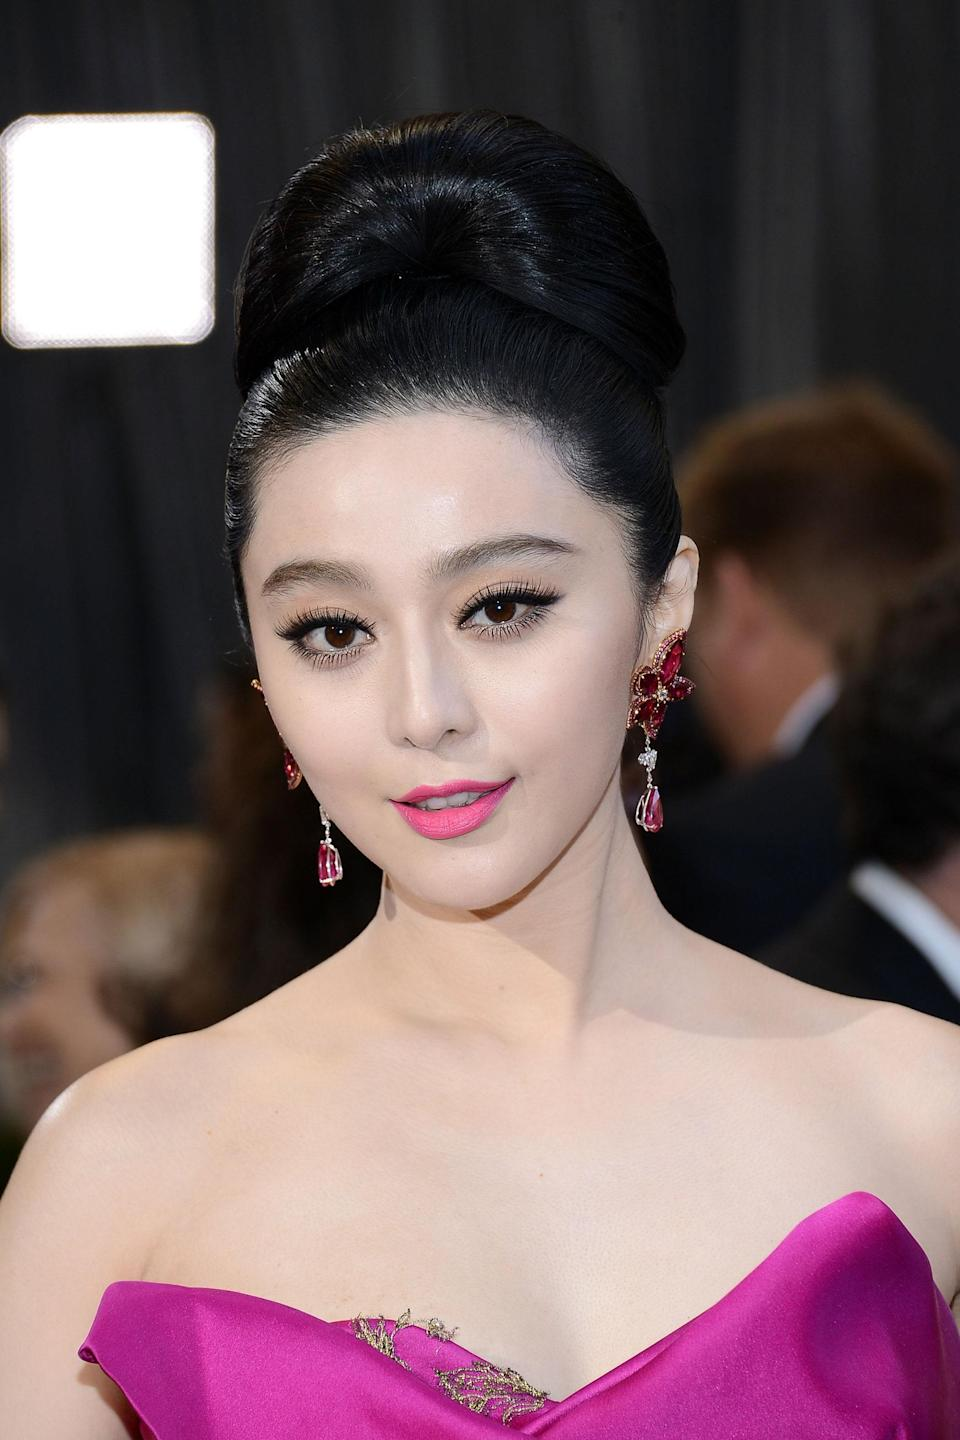 Pink is a power color, but how do you bring it to the red carpet? According to Chinese superstar Fan Bingbing, by wearing monochromatic magenta from head to toe in a bold Marchesa gown accented by chandelier earrings by Chopard. The unique shade required rubellite, a rare variant of tourmaline. The gems were cut into pear-shaped stones and set in rose gold to create these extraordinary earrings.